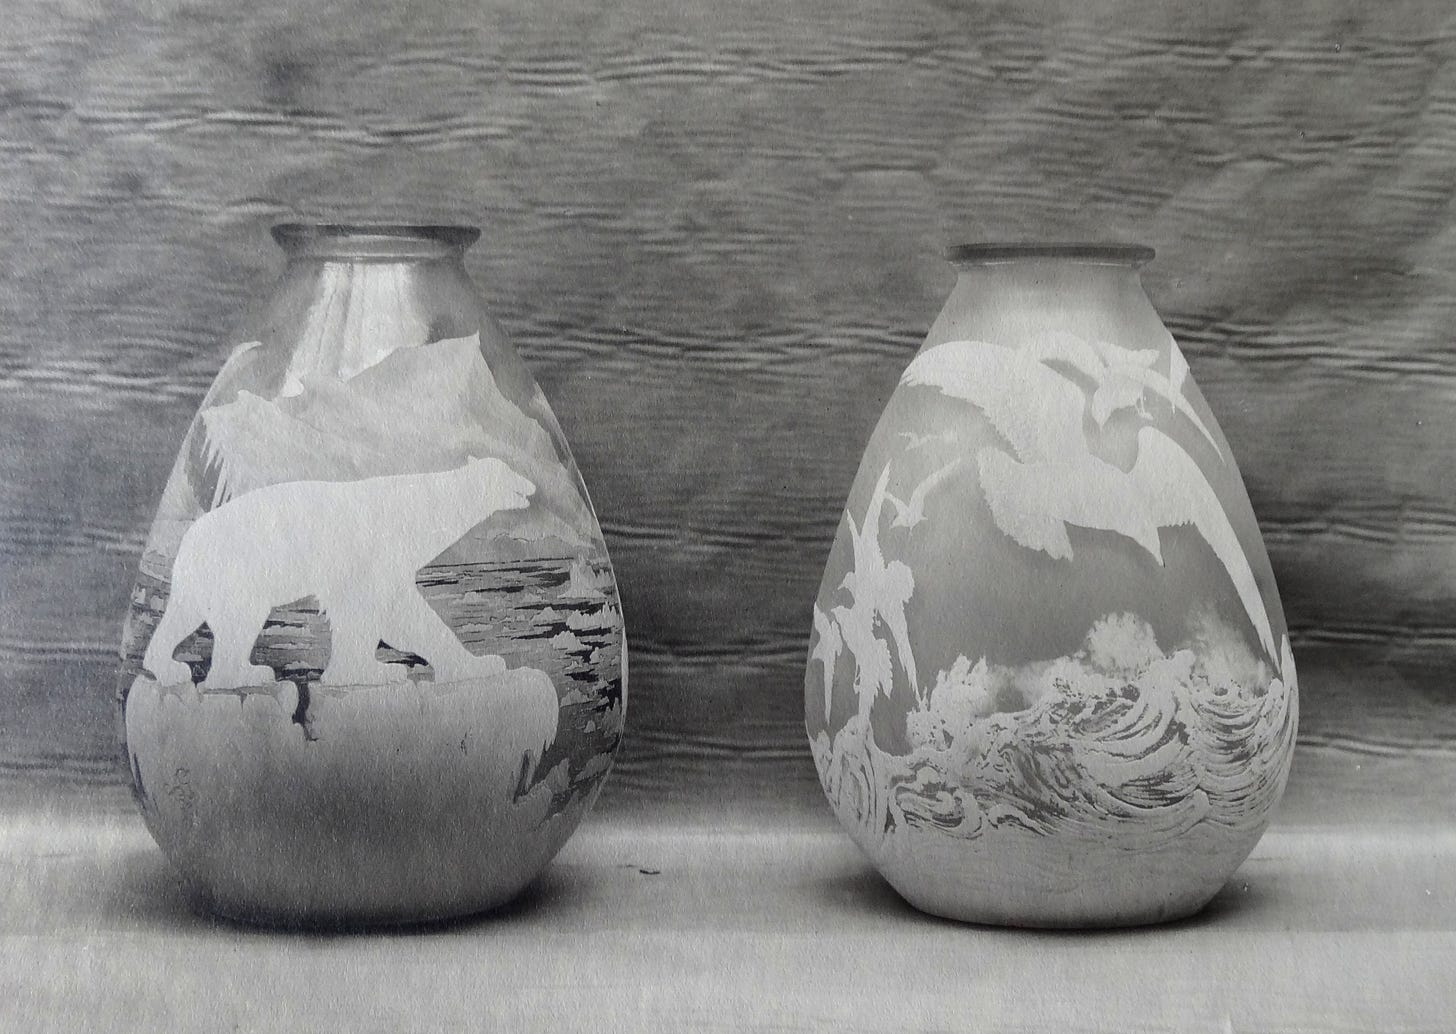 The Polar bears (with the Mk IX signature) and the Seagull vases from the Perdrizet sales album, early 1930s, private collection.